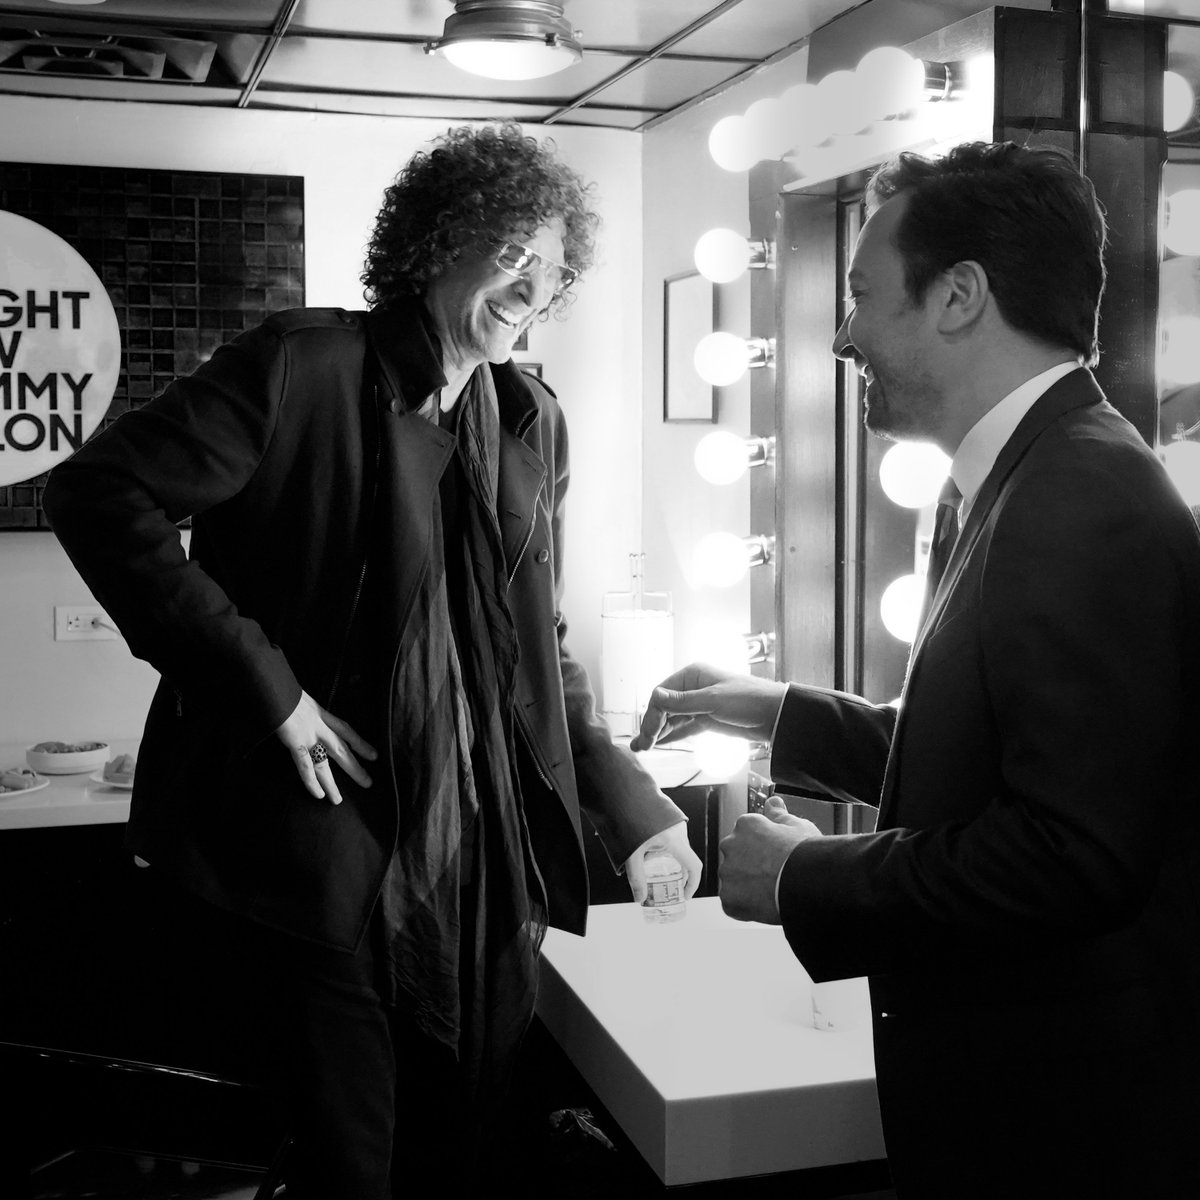 Conversations with a friend #HowardSternComesAgain